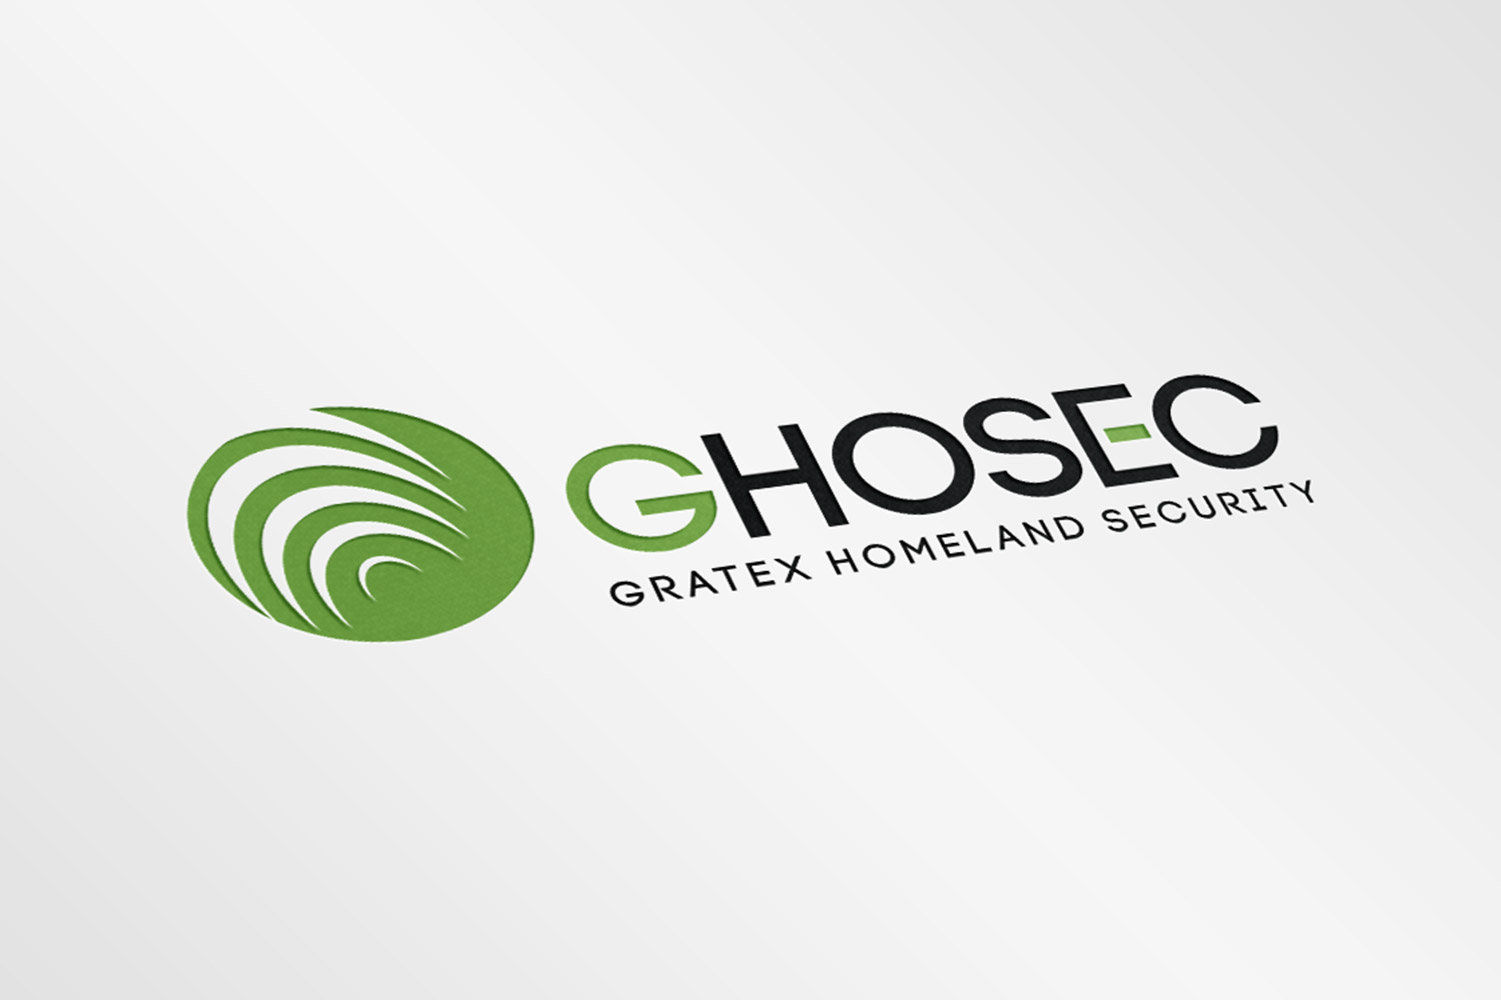 Ghosec, logo design image